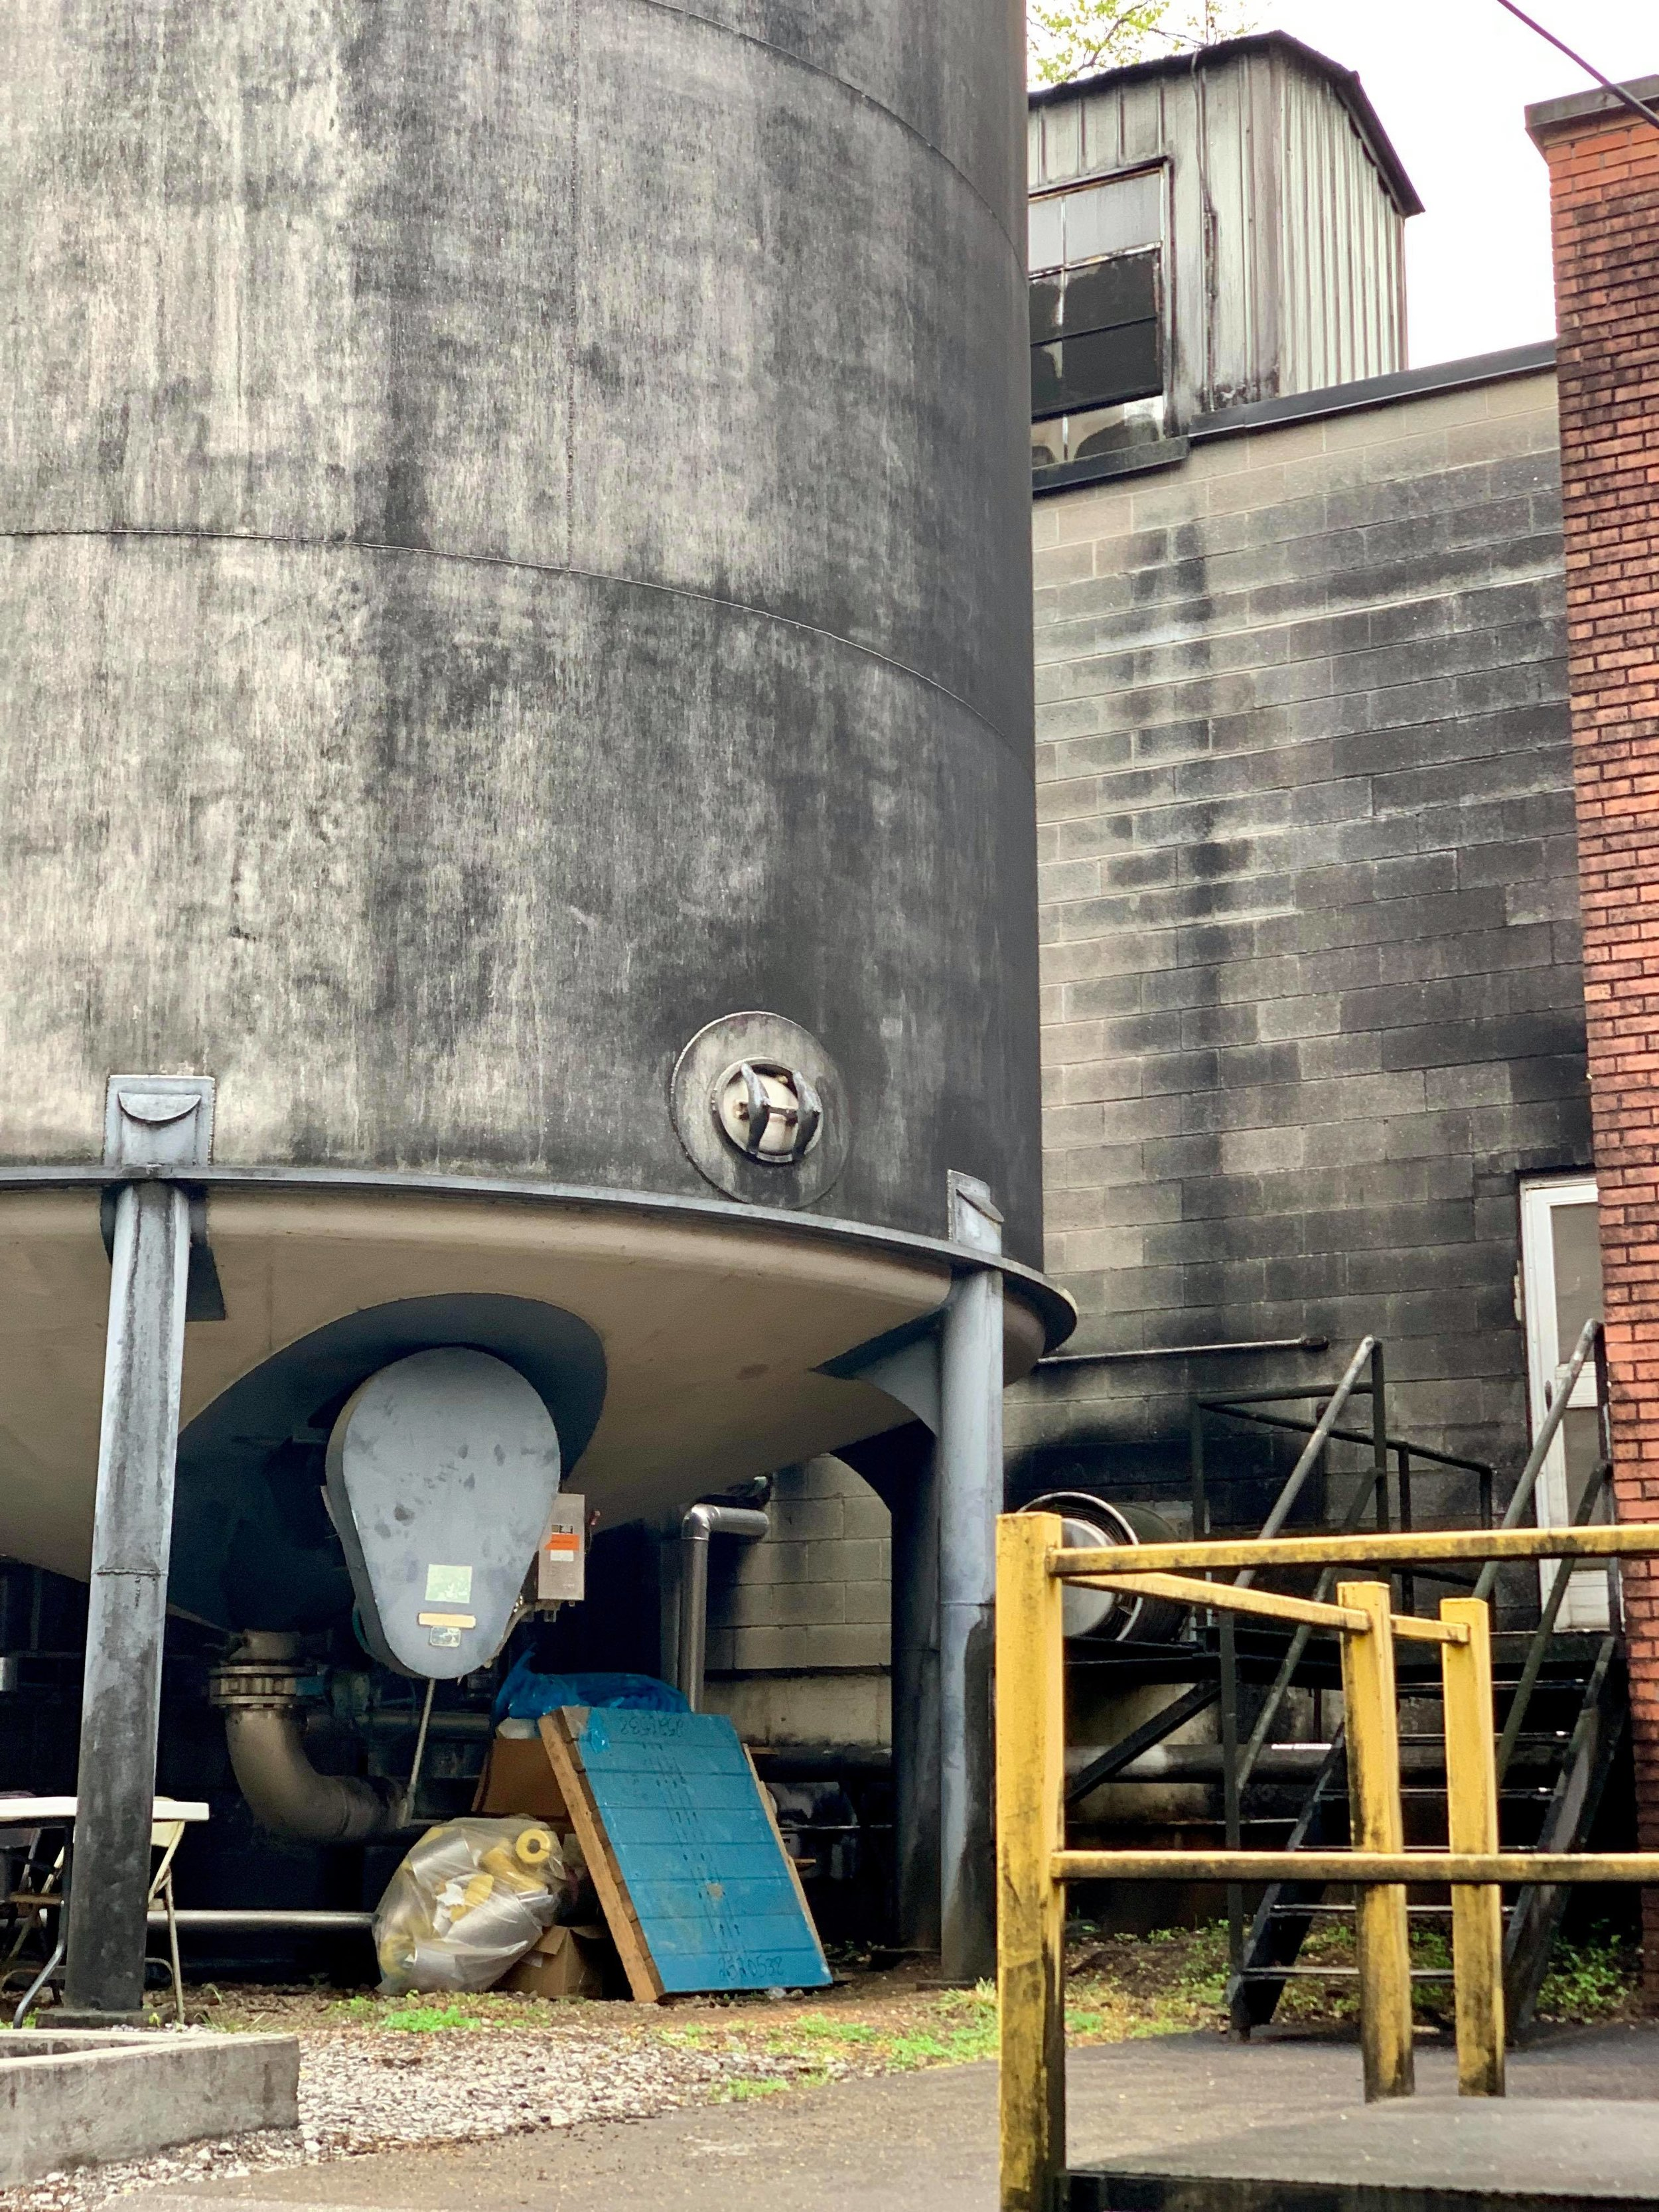 - Photos are prohibited on many parts of the tour, below is taken just outside their filtration and distillation facilities.